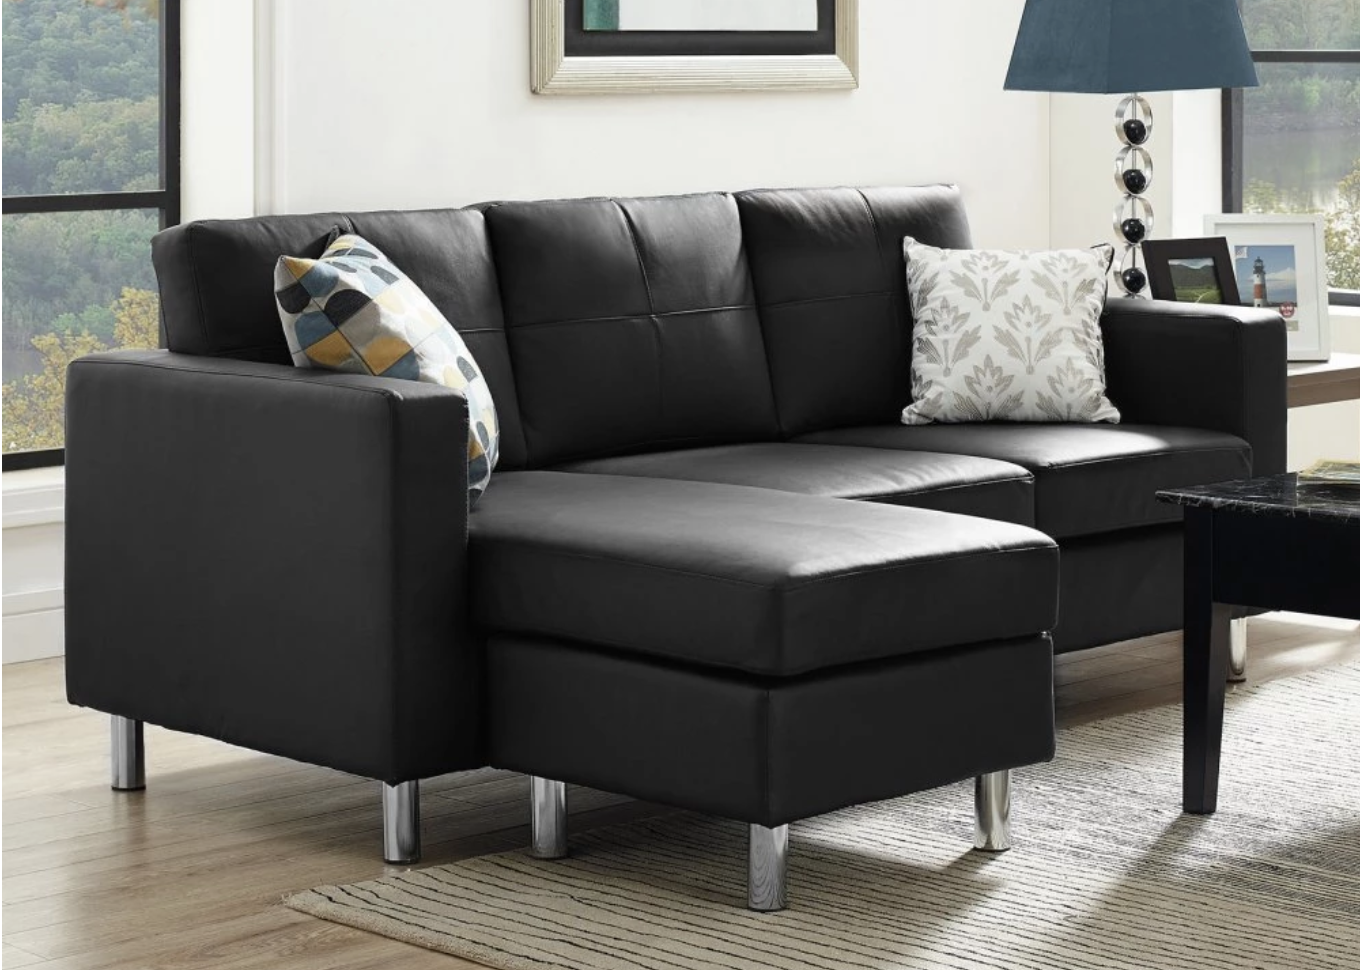 75 Modern Sectional Sofas for Small Spaces 2018 Small spaces